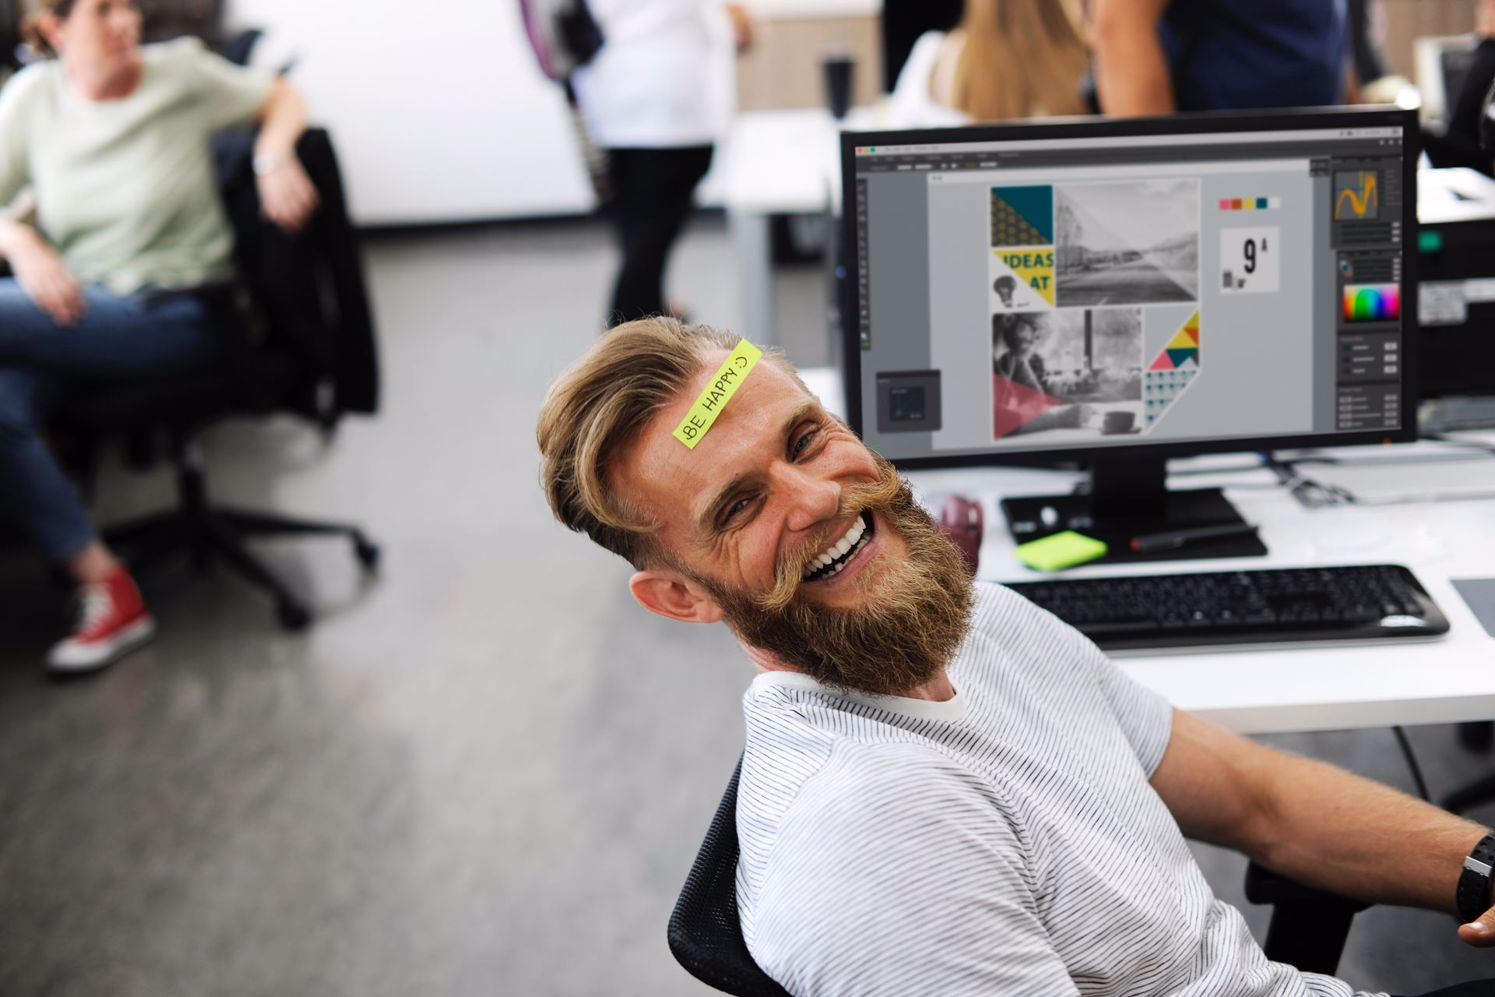 Change Your Office Environment—Change Your Life